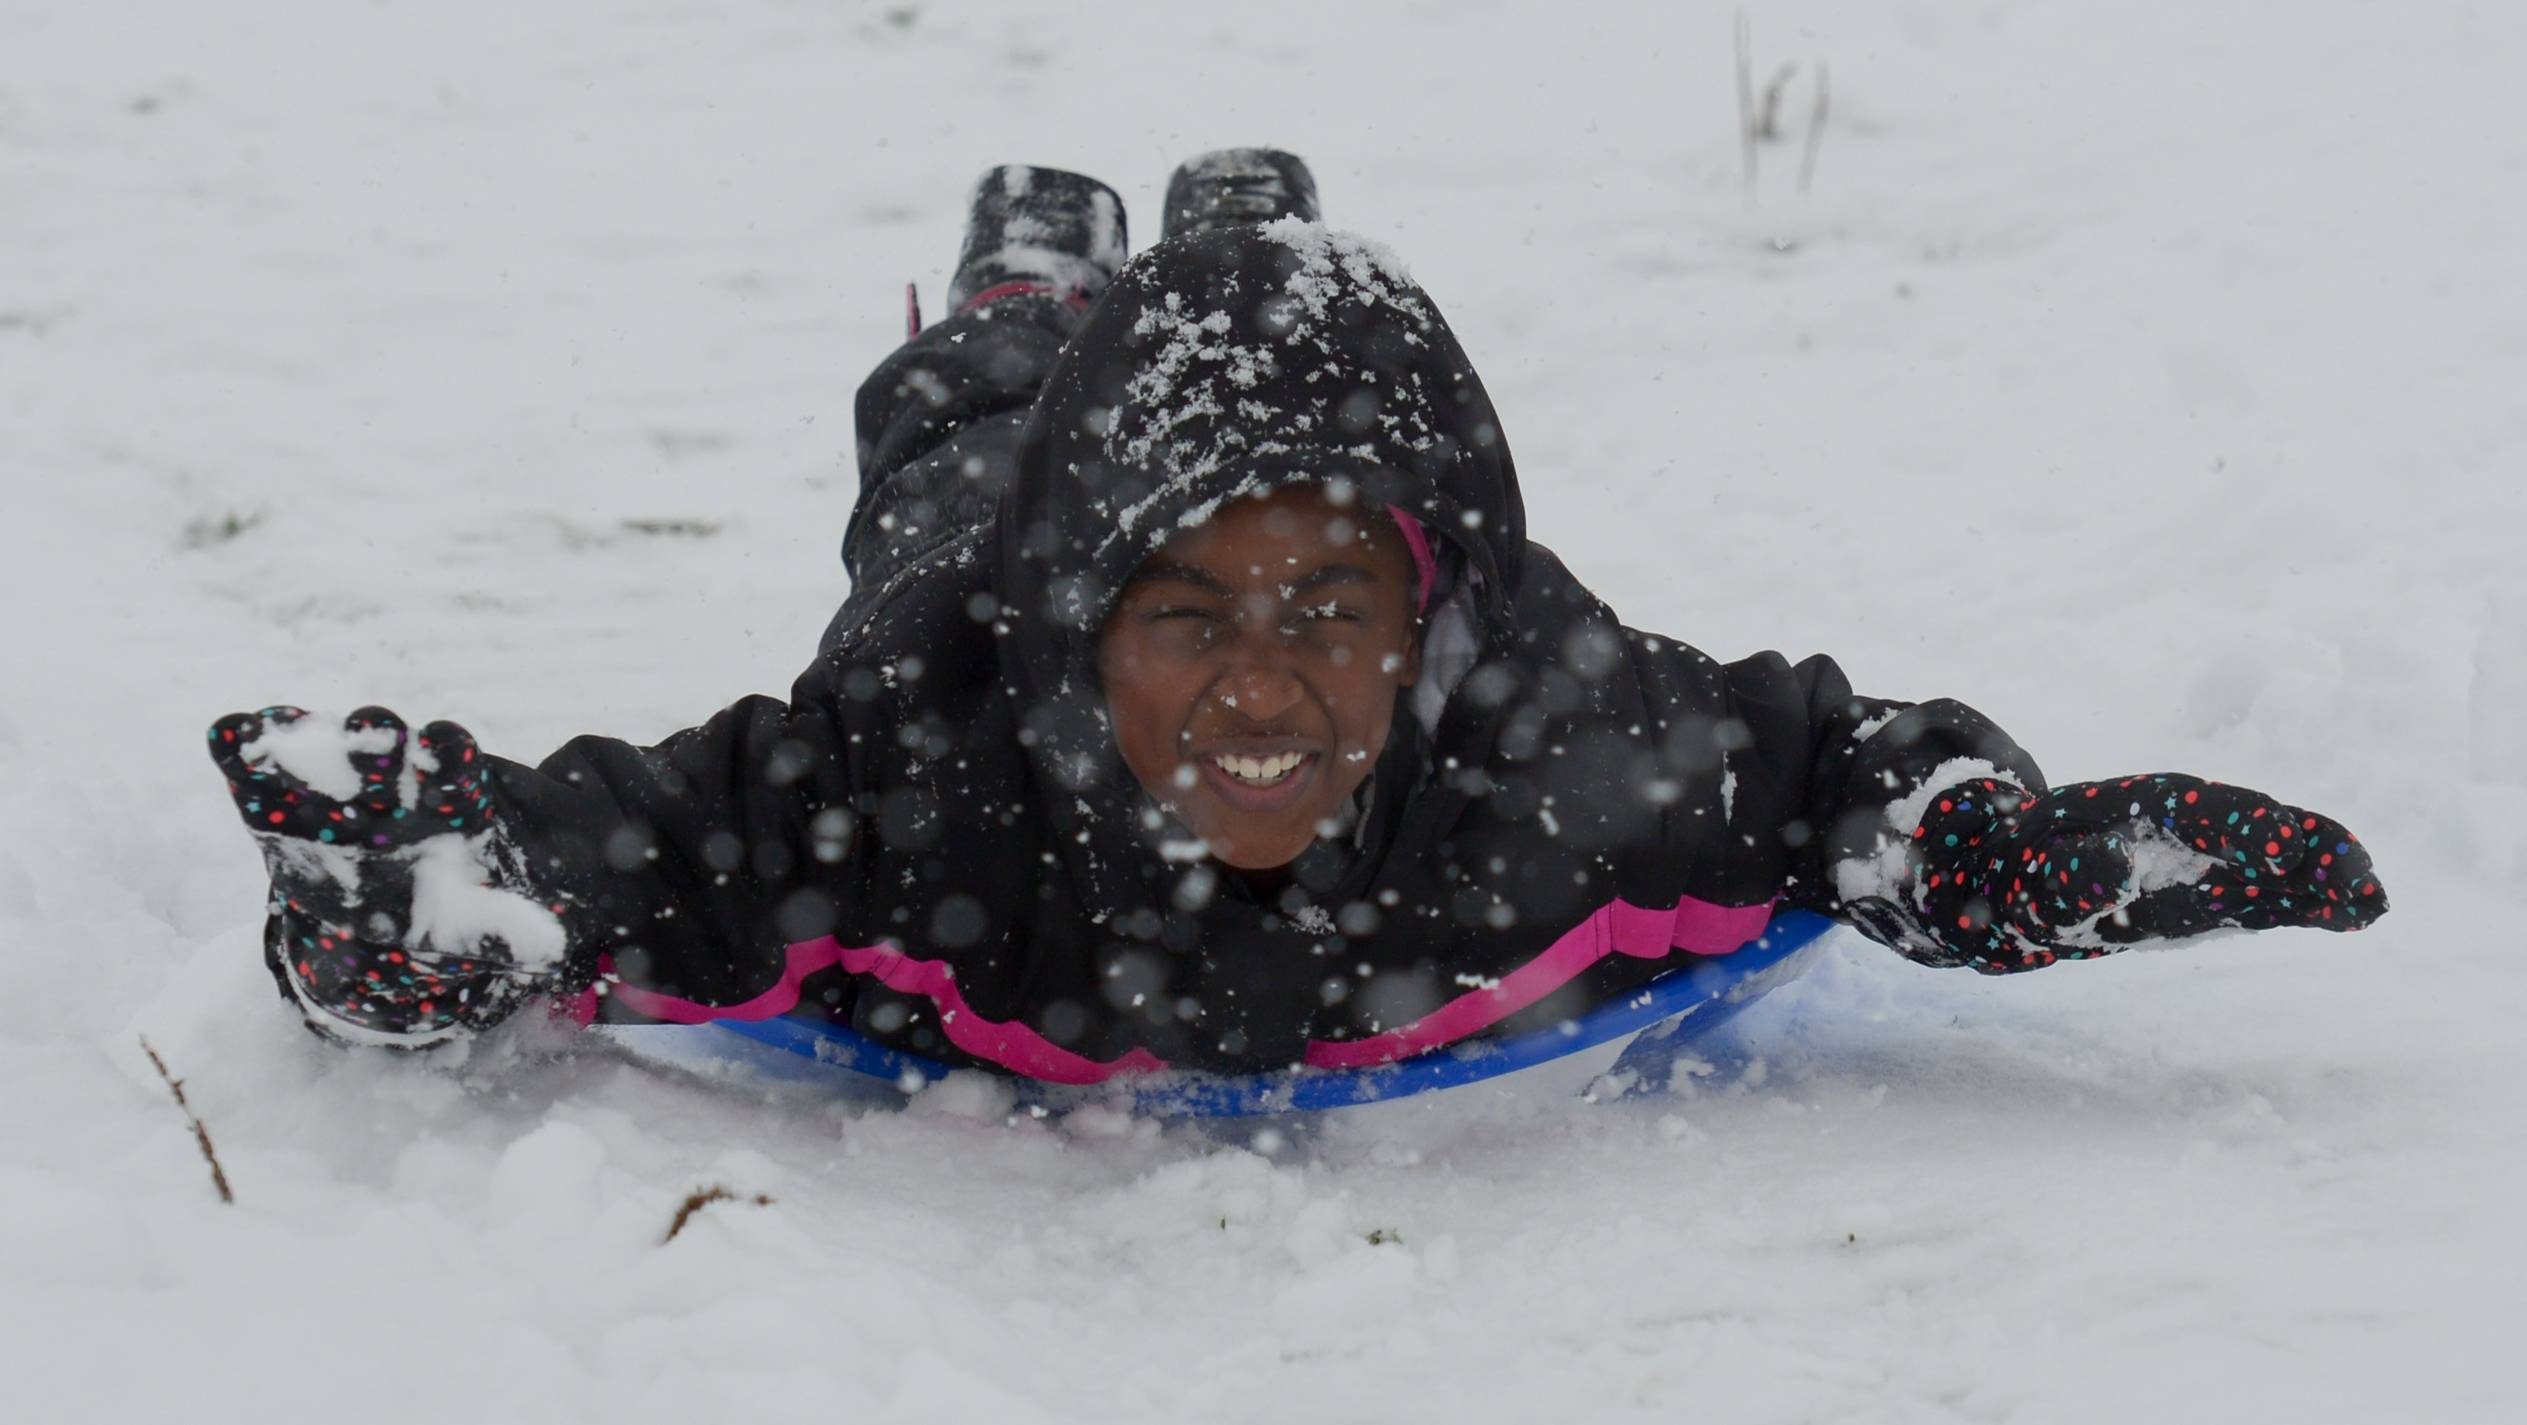 Aaliyah Cage, 9, of Hanover Park slides down the sledding hill Sunday at Community Park in Hanover Park during the first snowfall of the season.